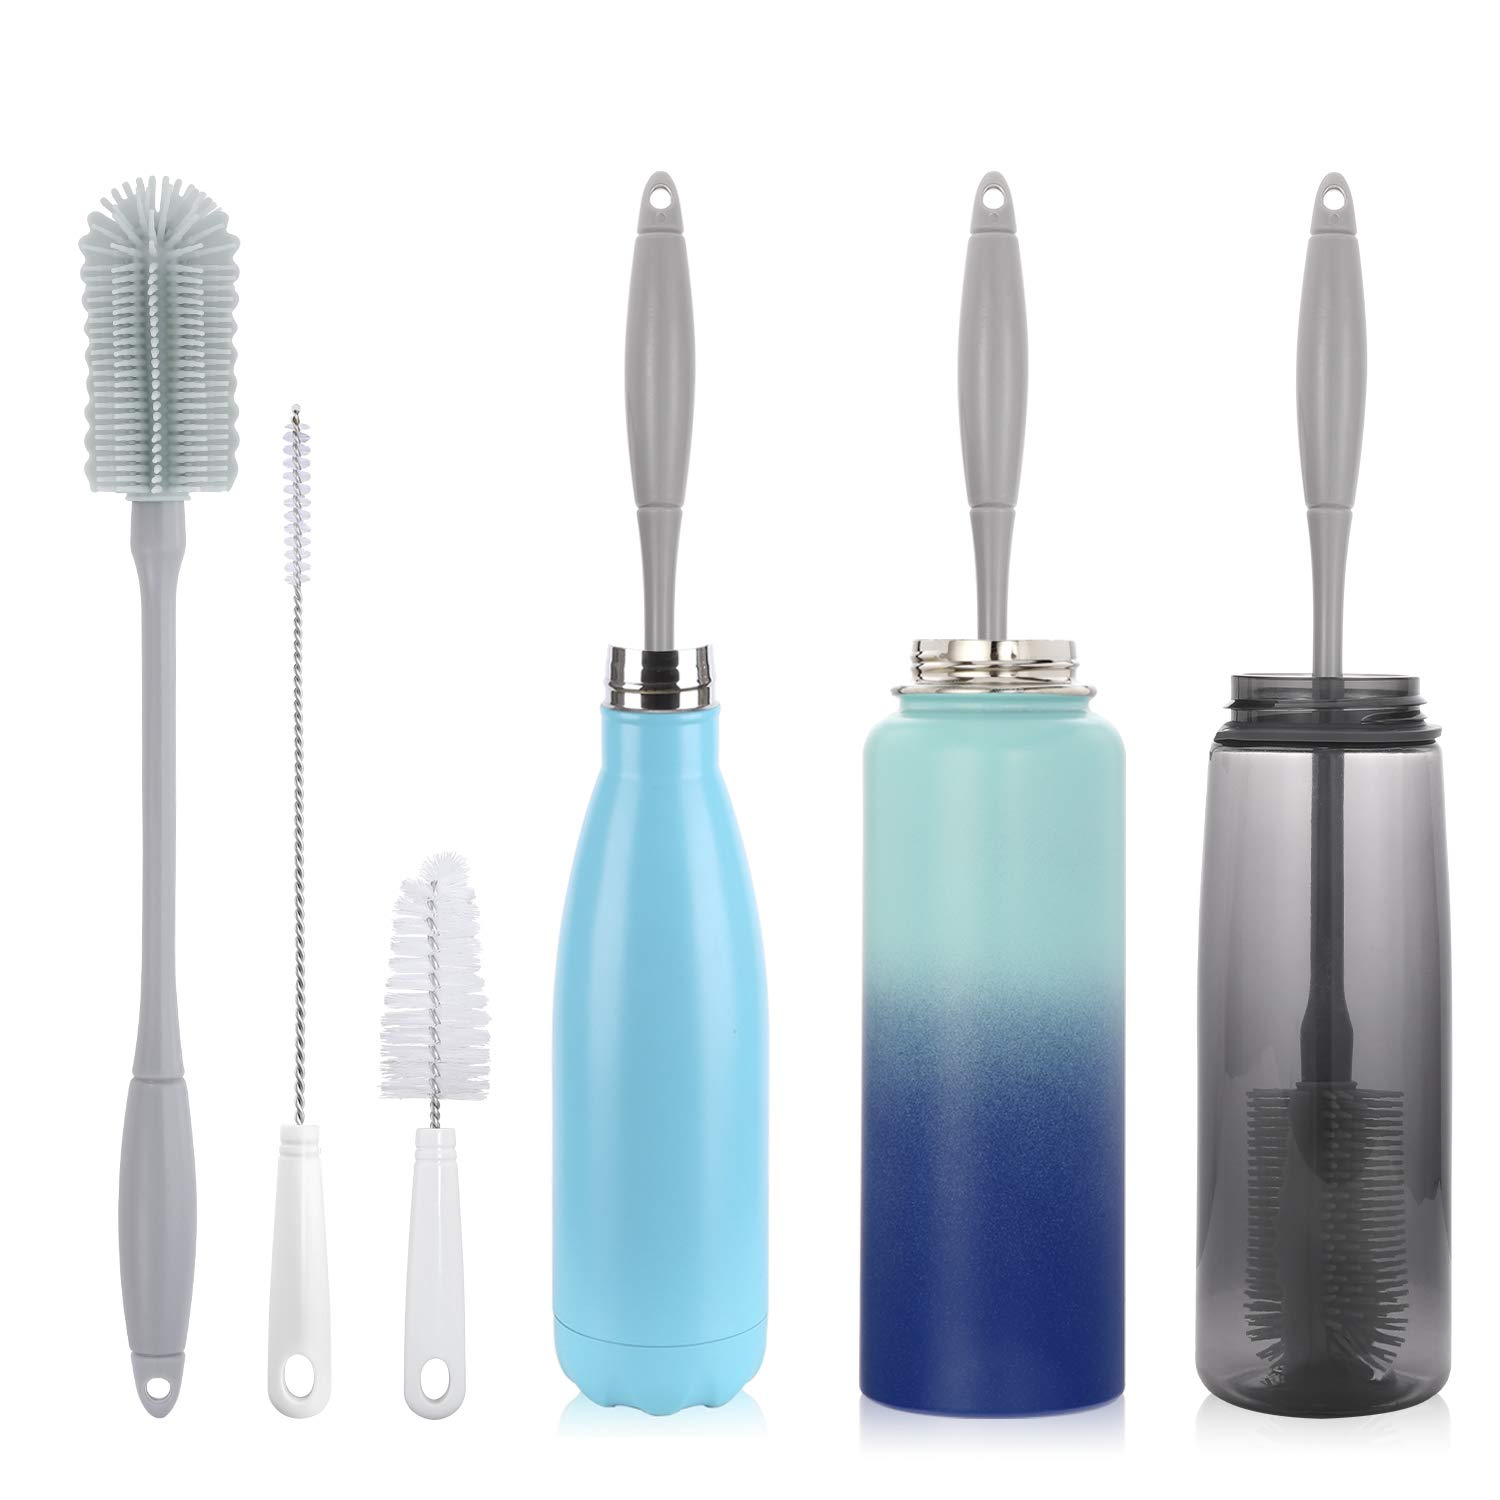 14 Silicone Bottle Brush Compatible